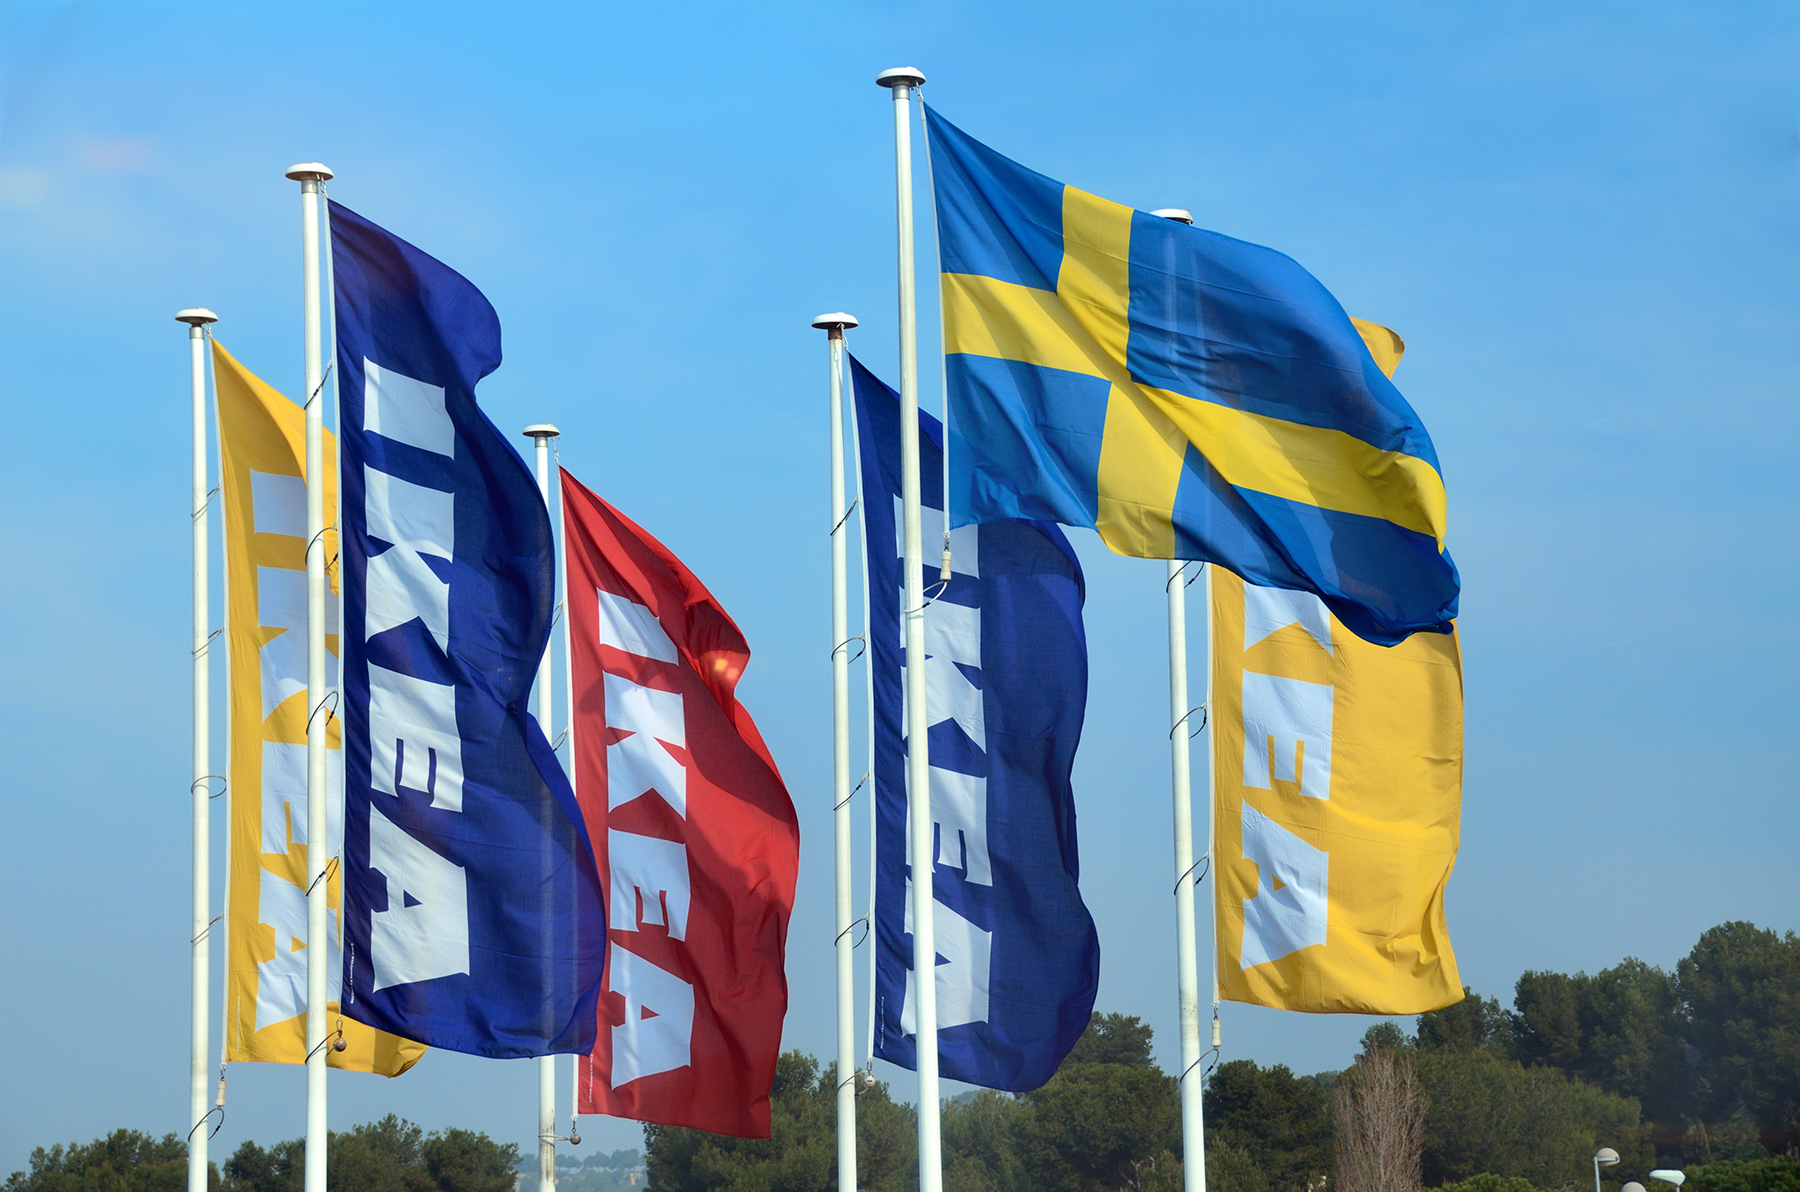 IKEA Store Flags